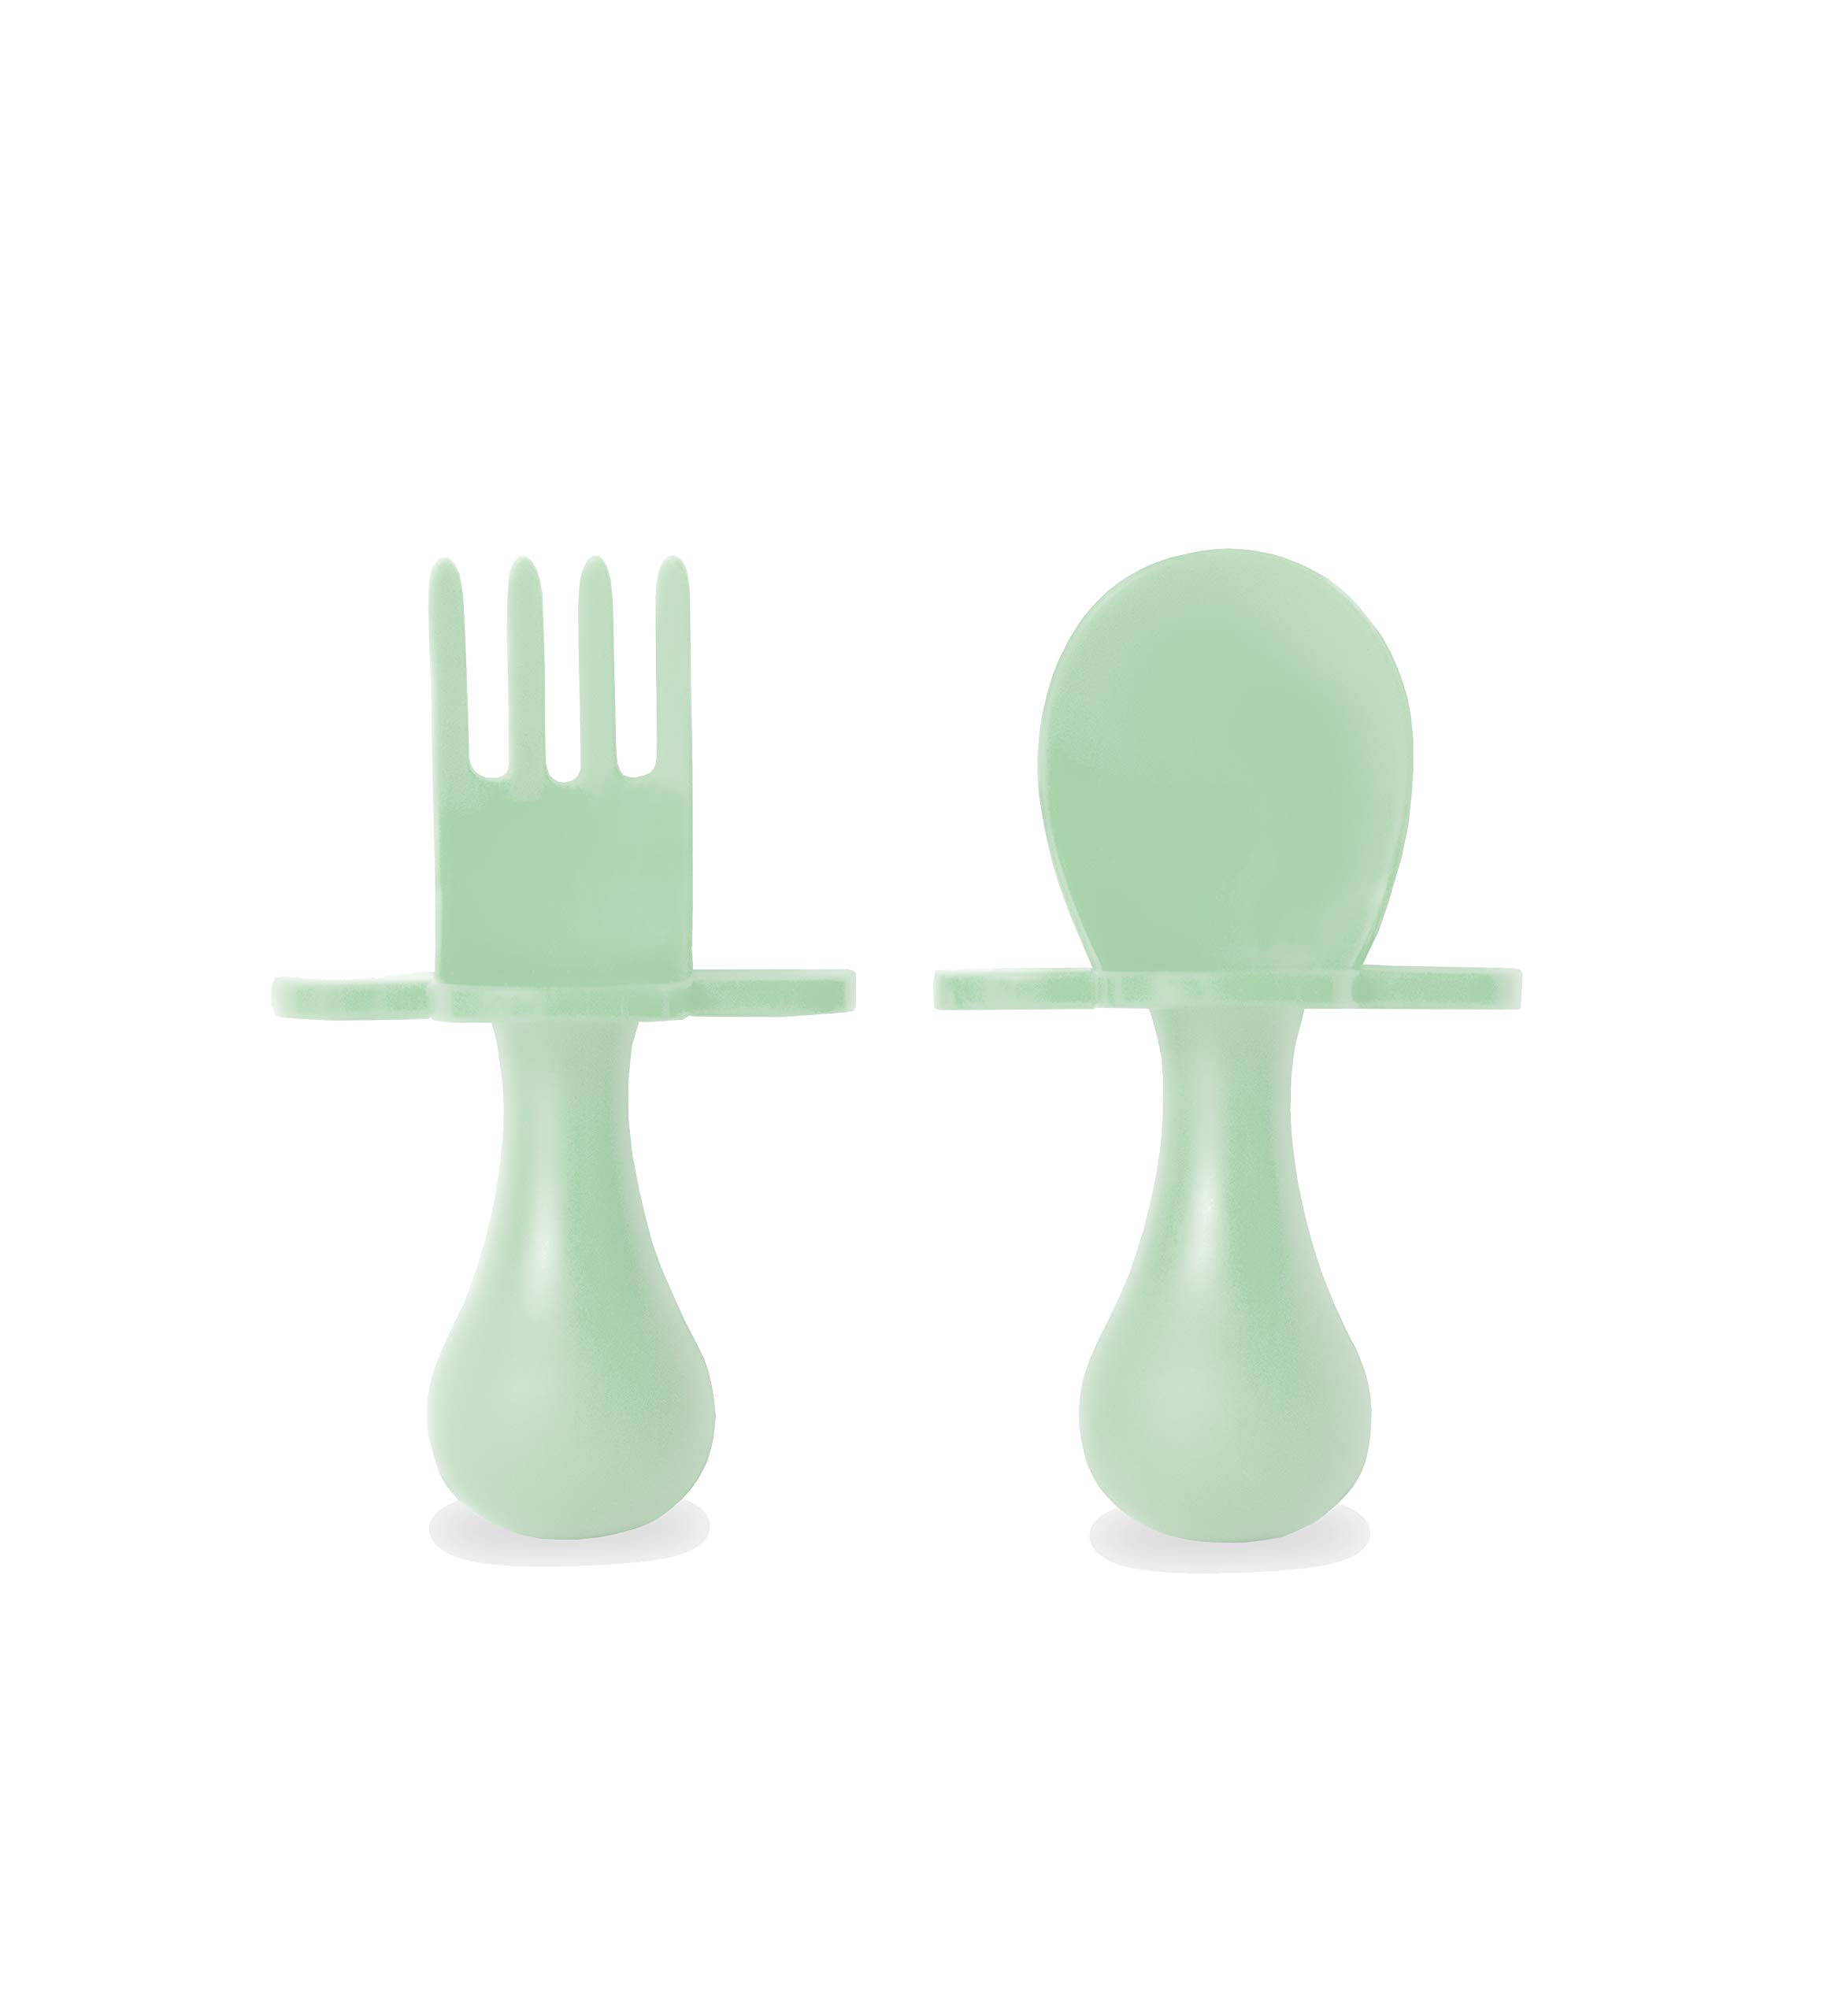 grabease First Self Feeding Utensil Set of Spoon and Fork for Toddler and Baby. BPA Free. to-go Pouch (Mint)